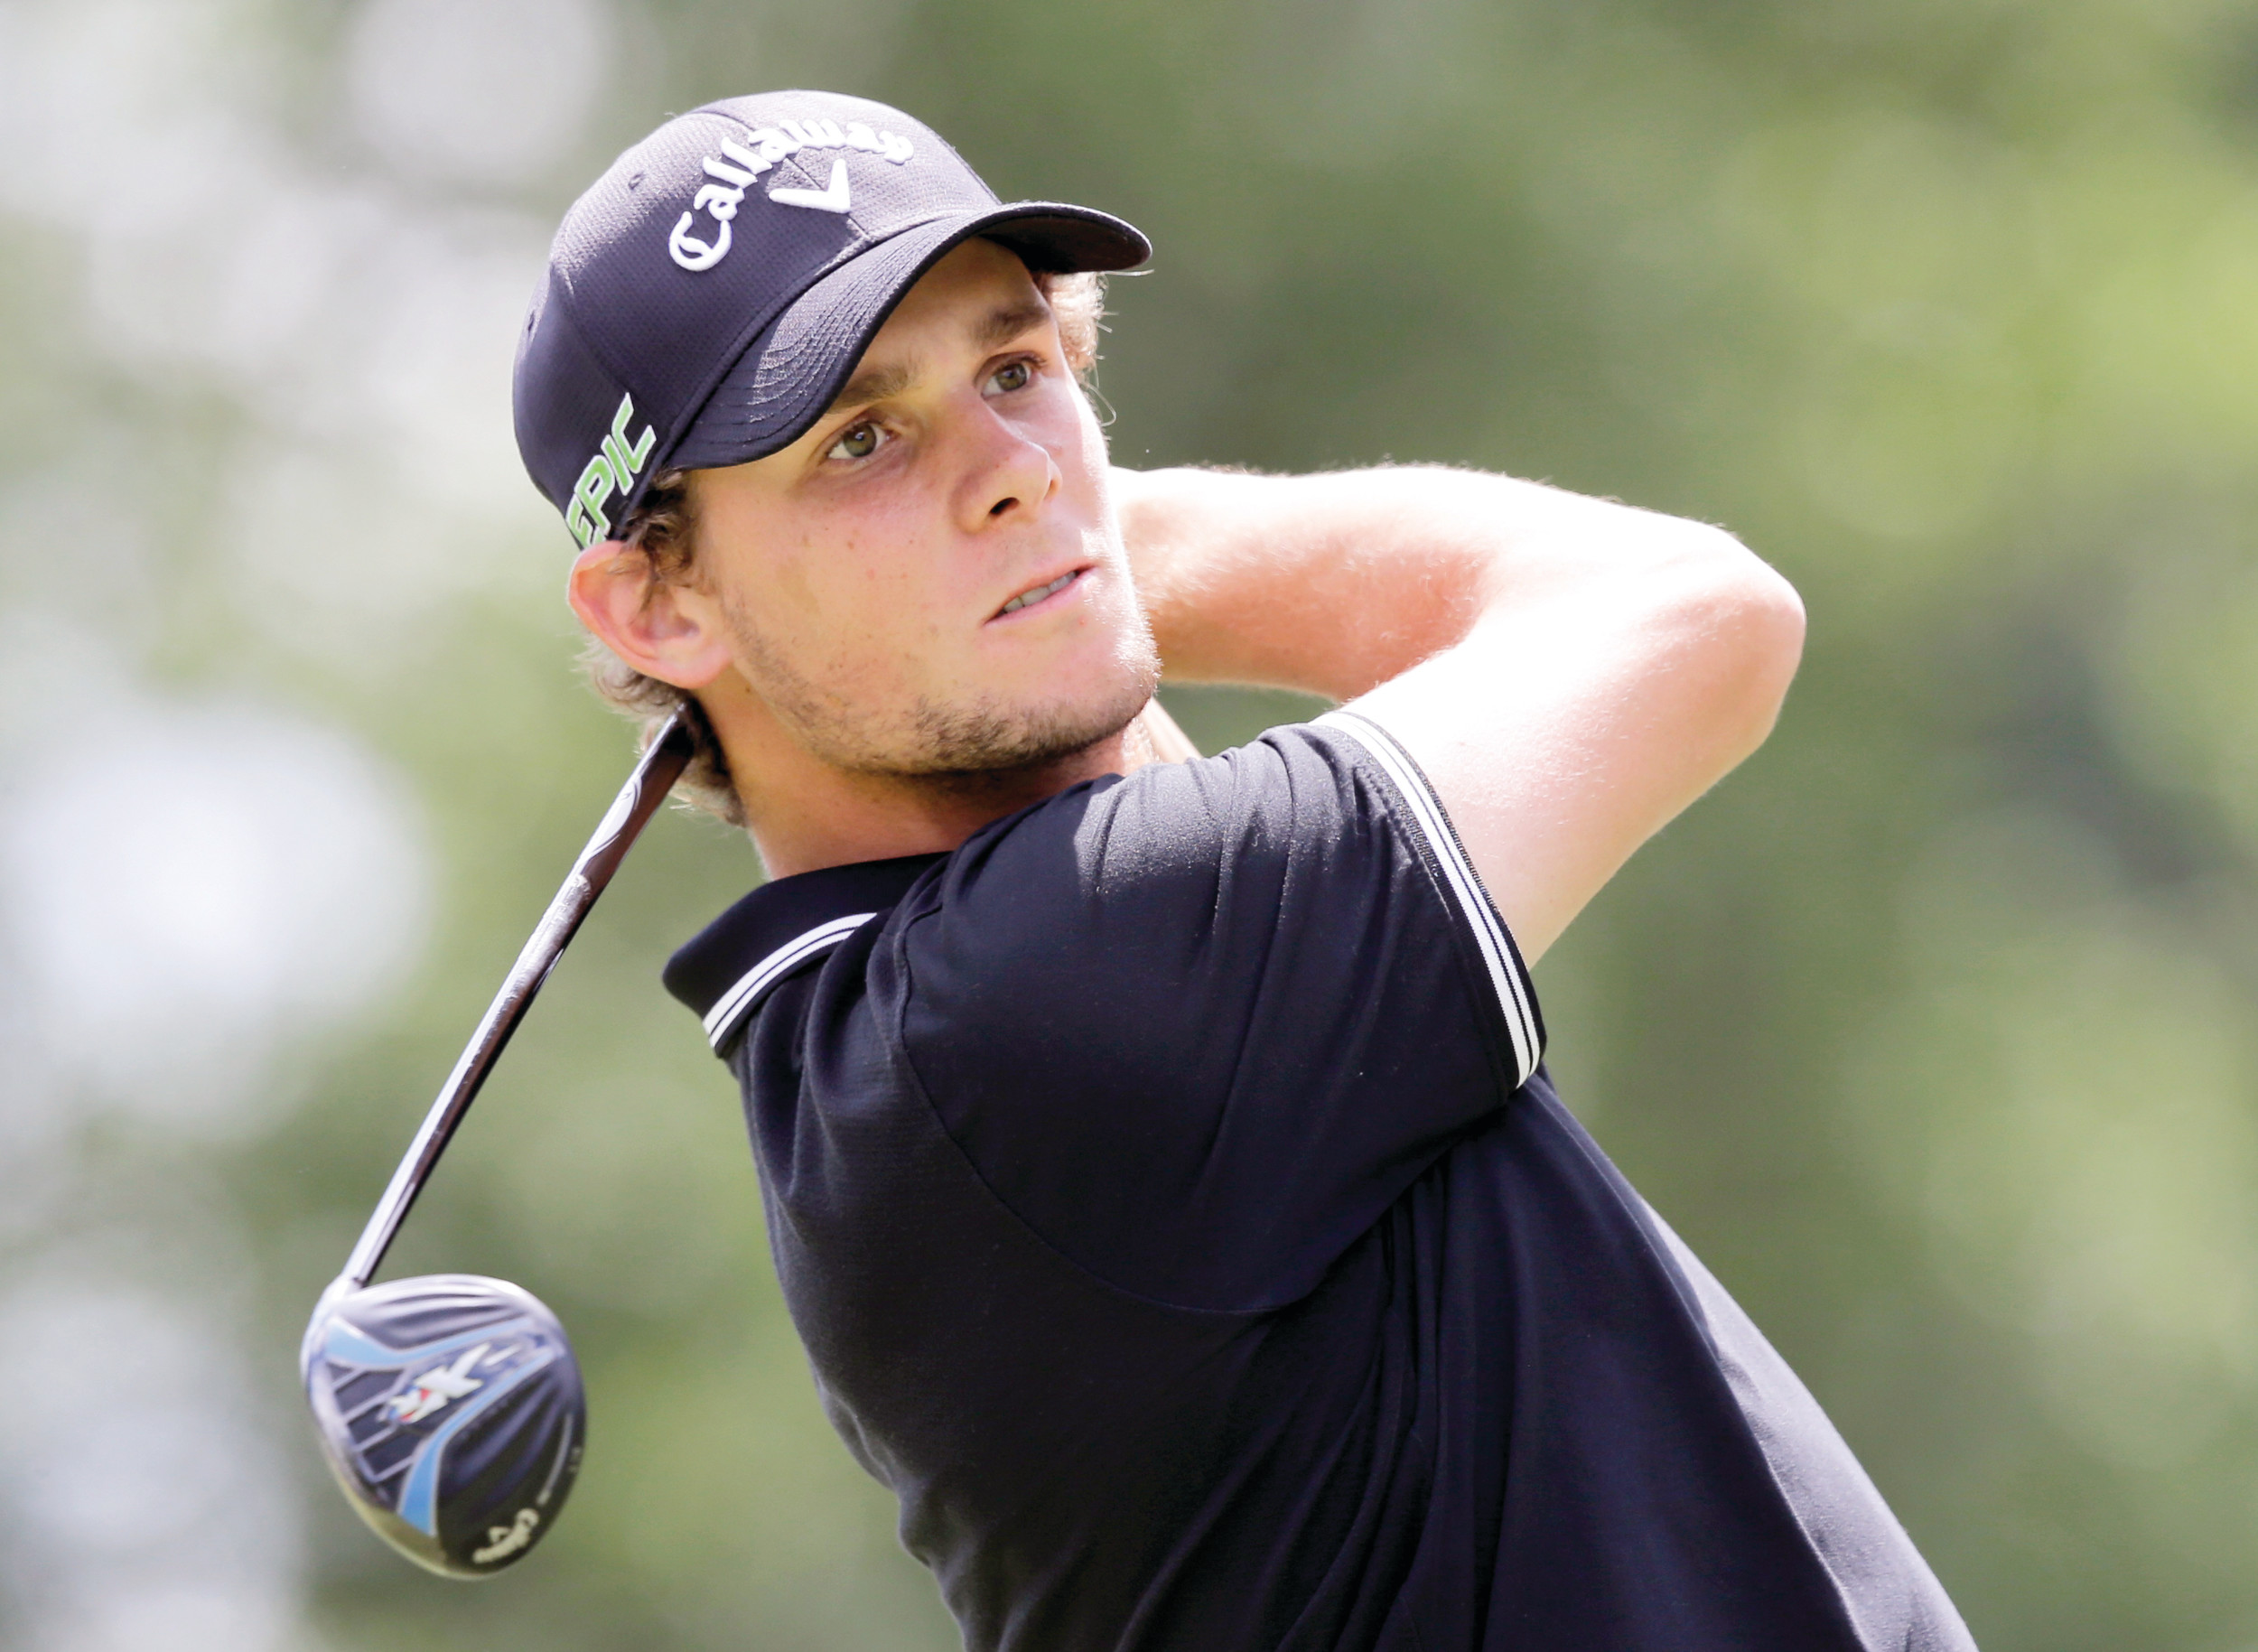 Thomas Pieters tees off on the third hole during Saturday's third round of the Bridgestone Invitational at Firestone Country Club in Akron, Ohio. Pieters shot a 66 and was tied for the lead with Zach Johnson.